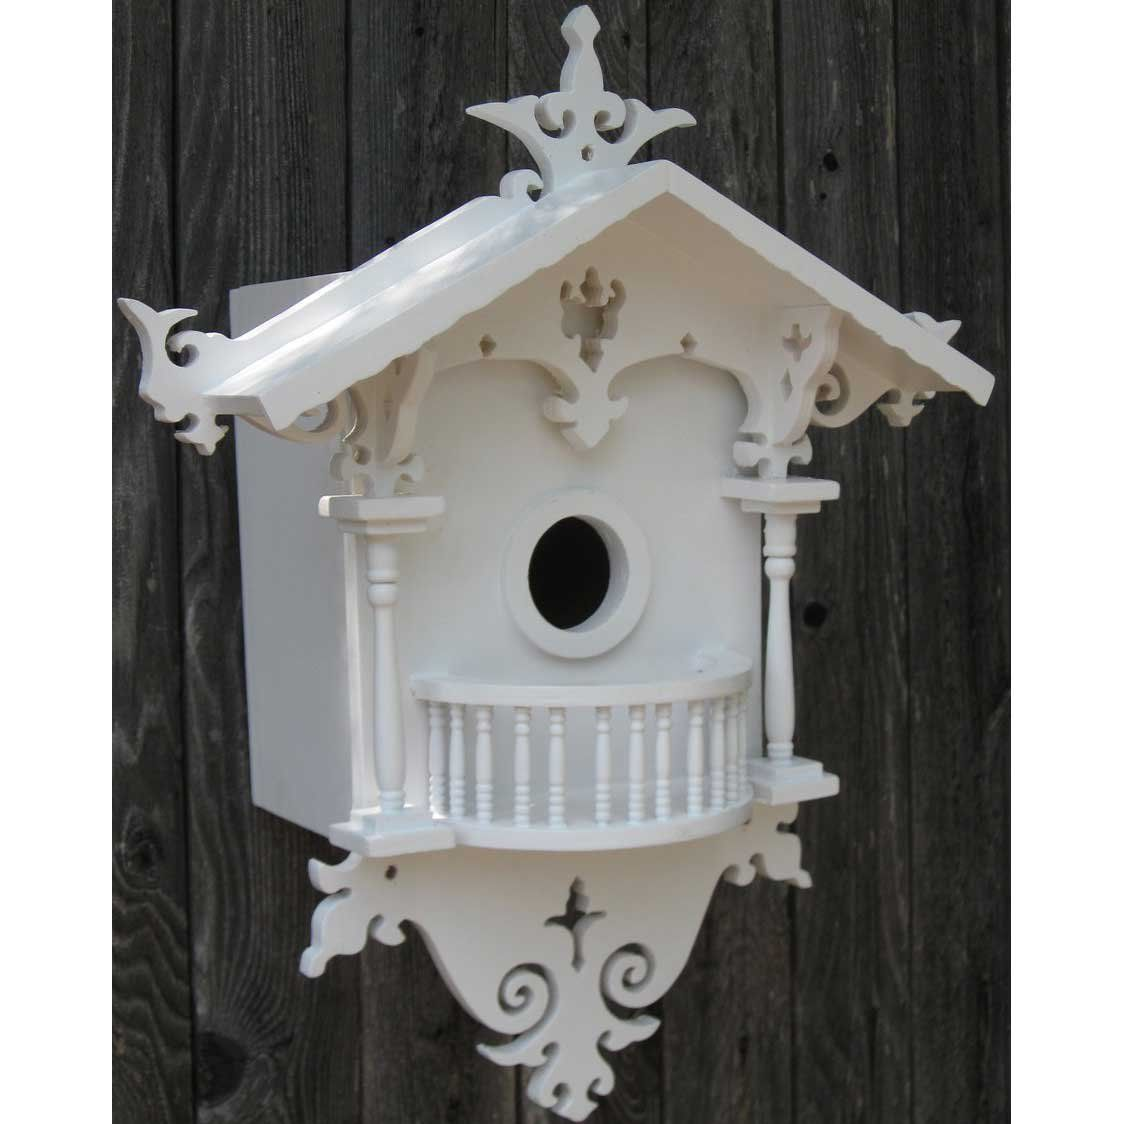 Victorian Bird Houses Decorative bird houses, Bird